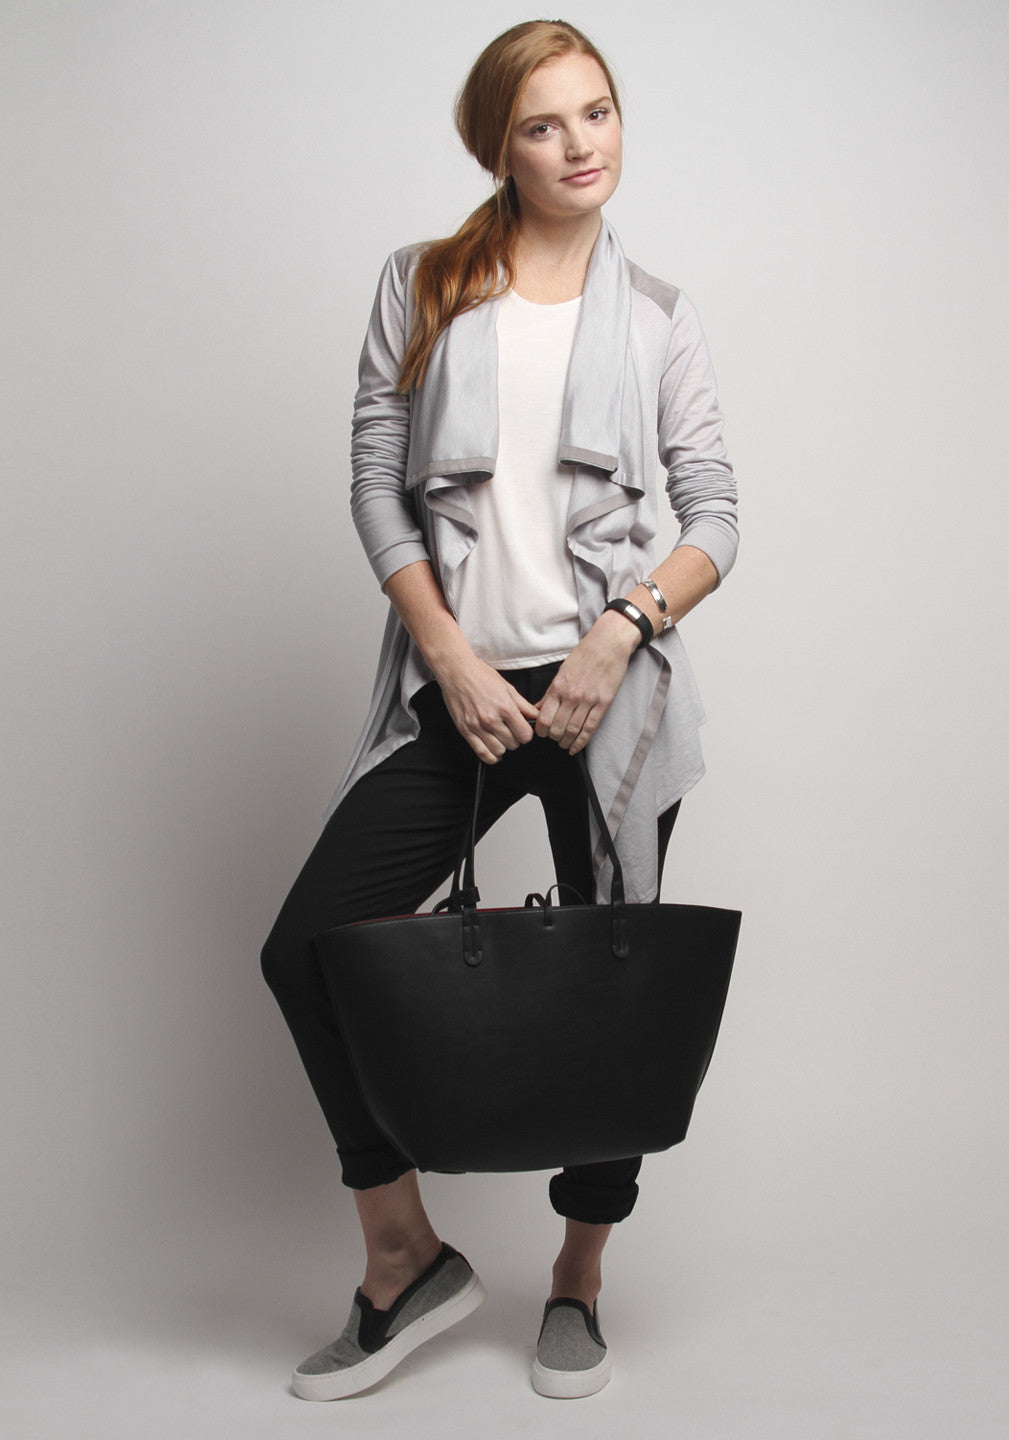 24/7 Pants Jet Black & Good-to-Go Cardi Mist Grey Combo Pack